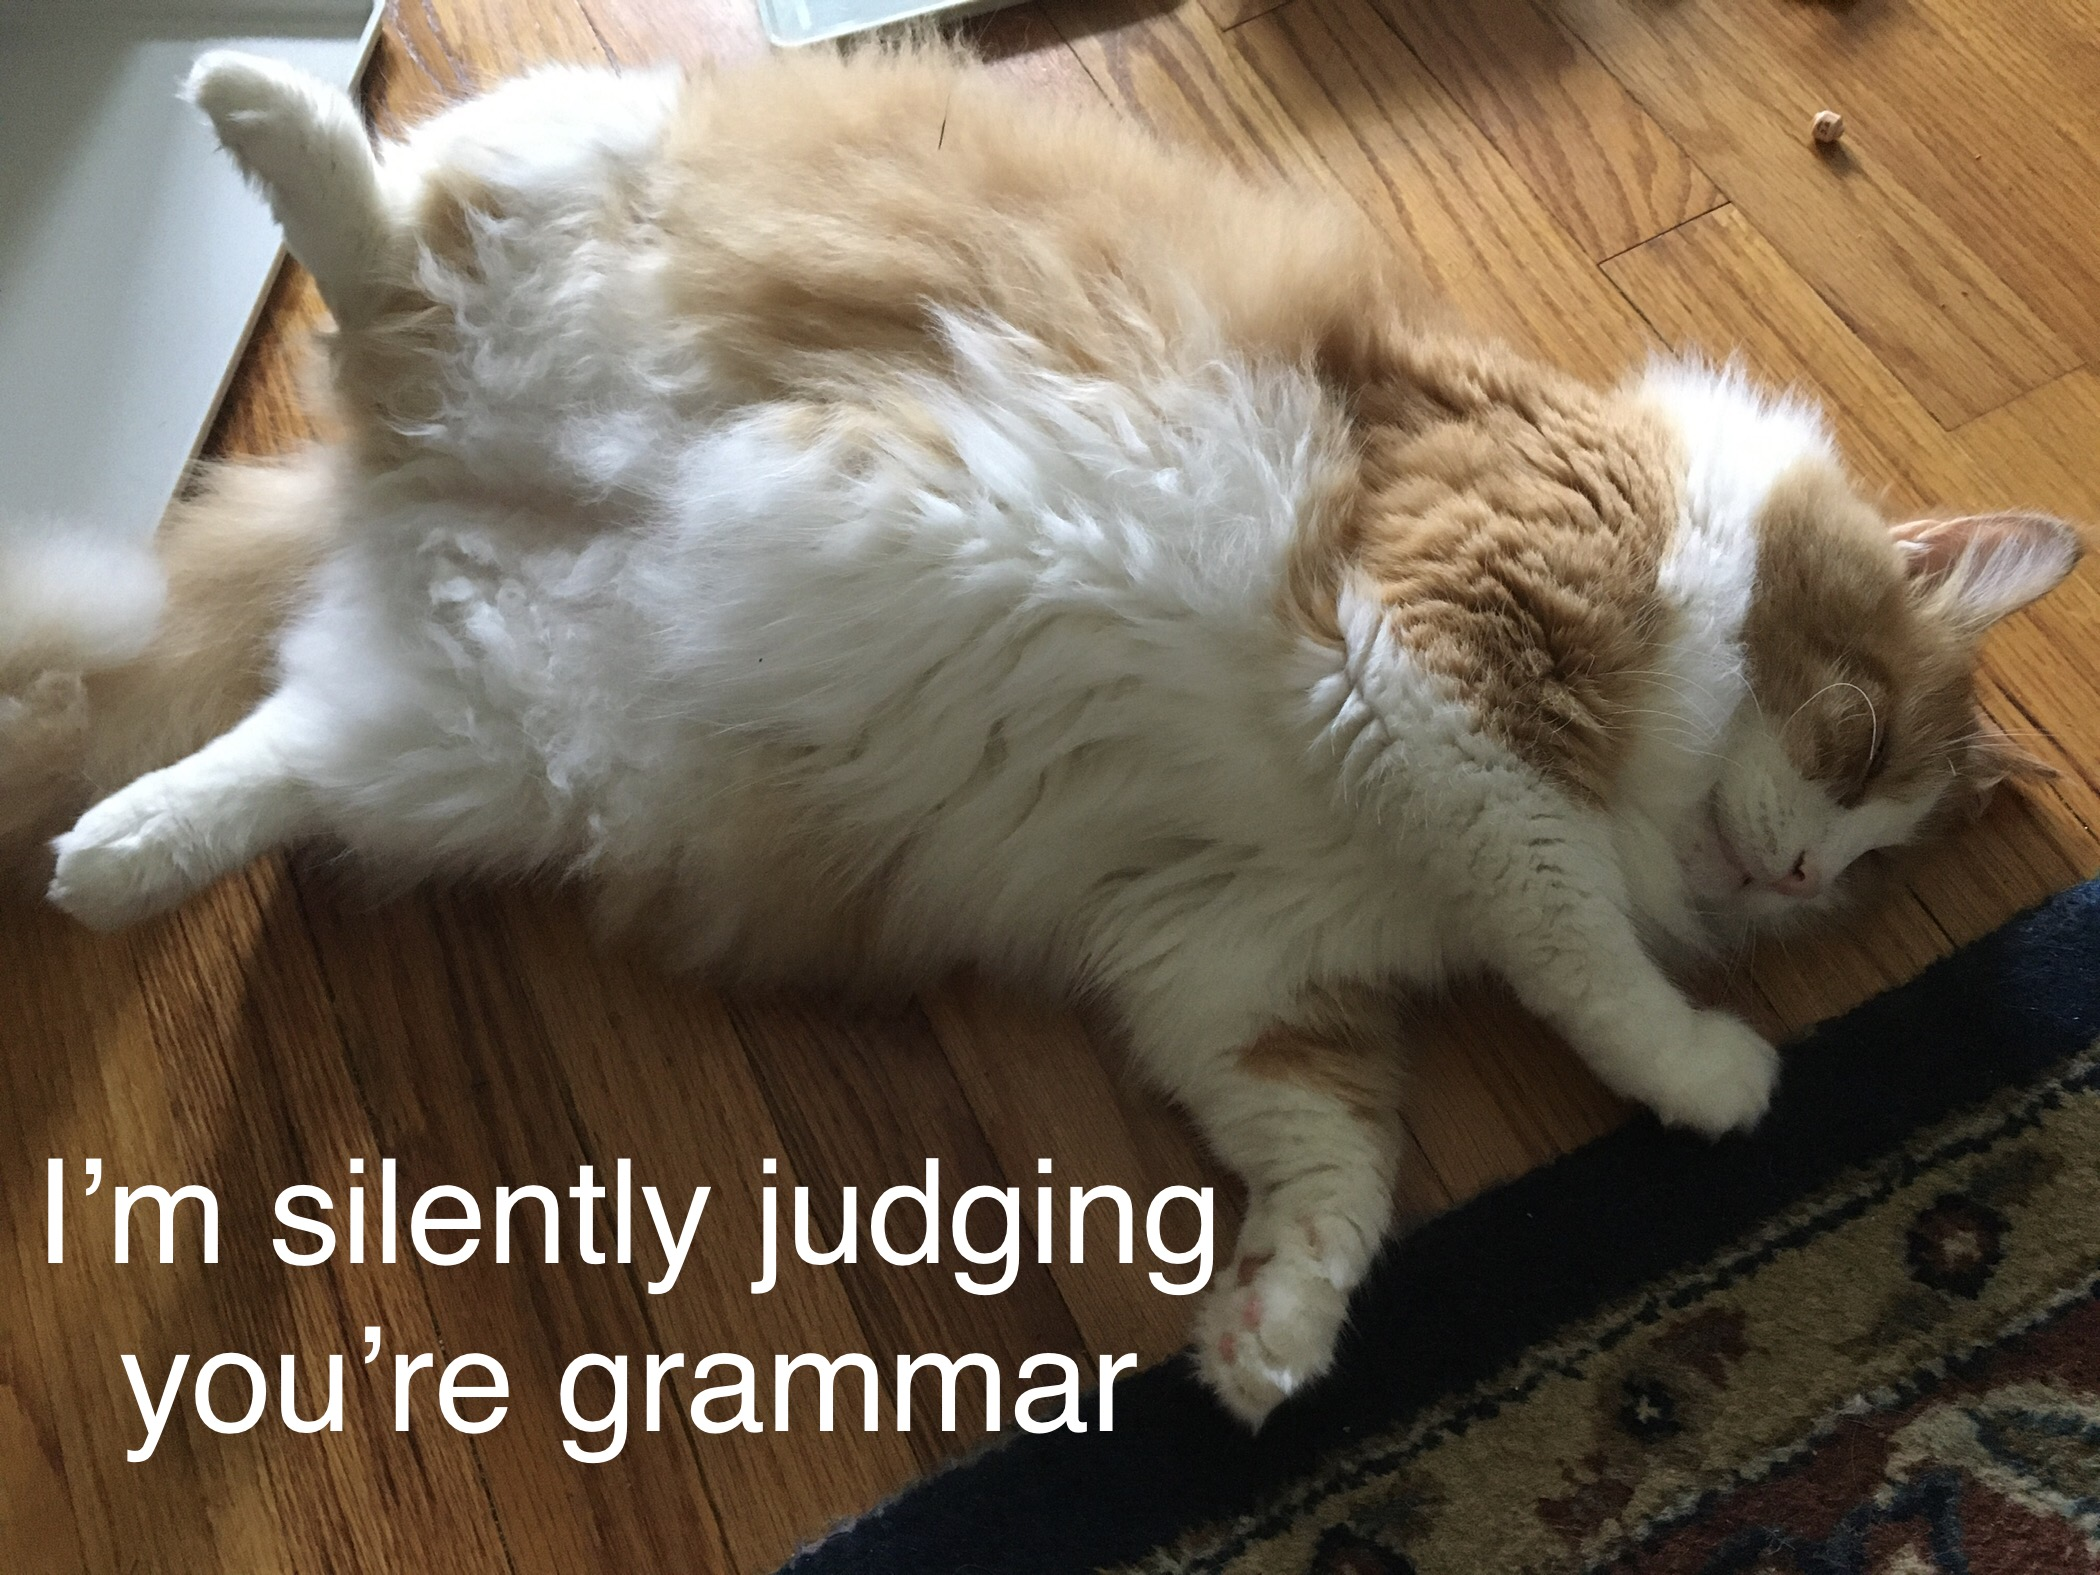 """Image of cat asleep with text """"I'm silently judging you're grammar"""""""